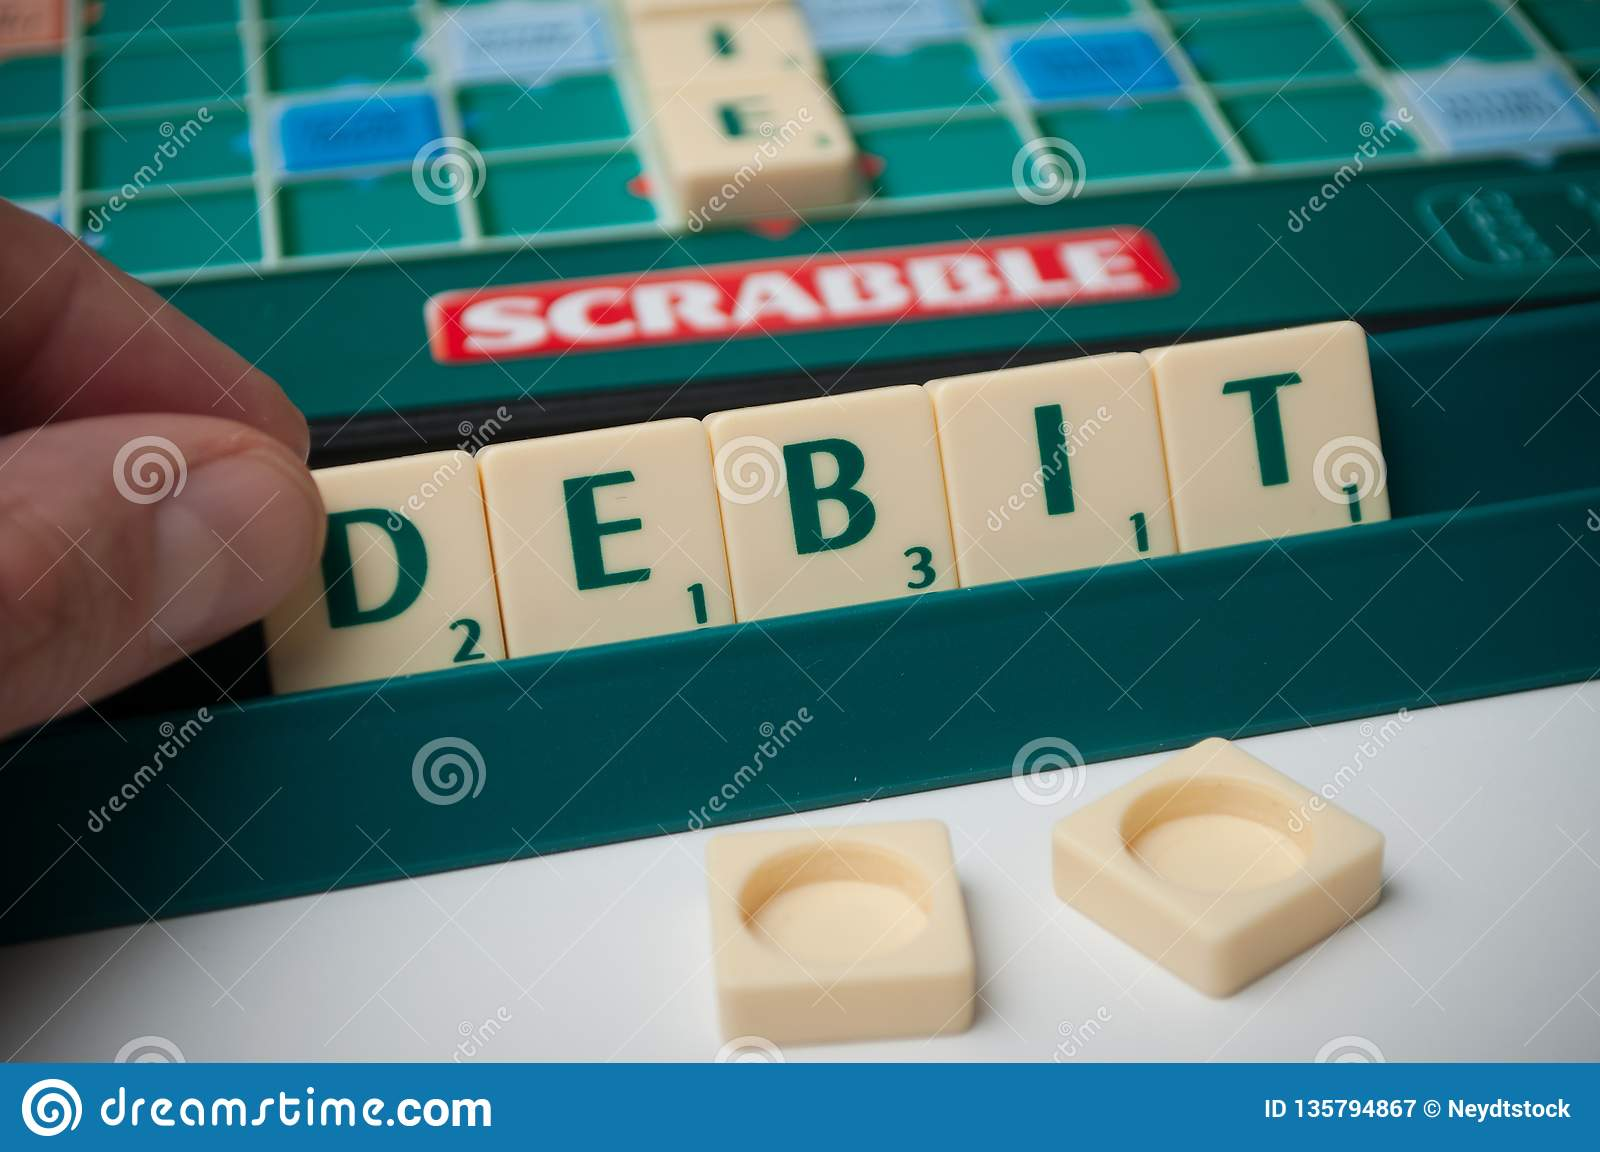 Plastic Letters On Scrabble Board Game With Word : Debit